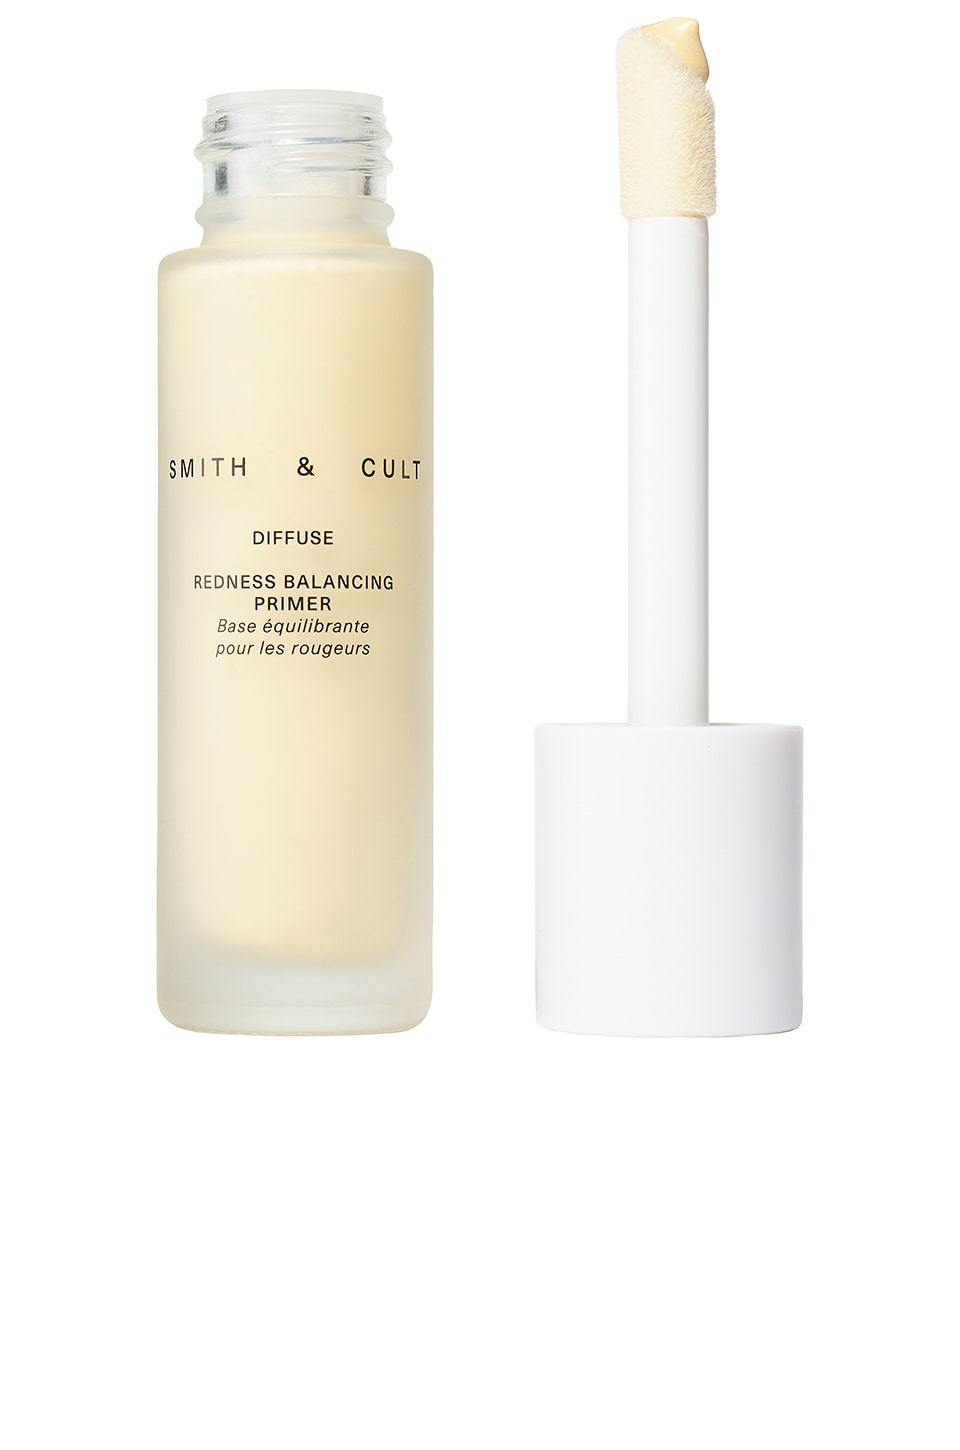 Smith & Cult DIFFUSE 페이스 프라이머